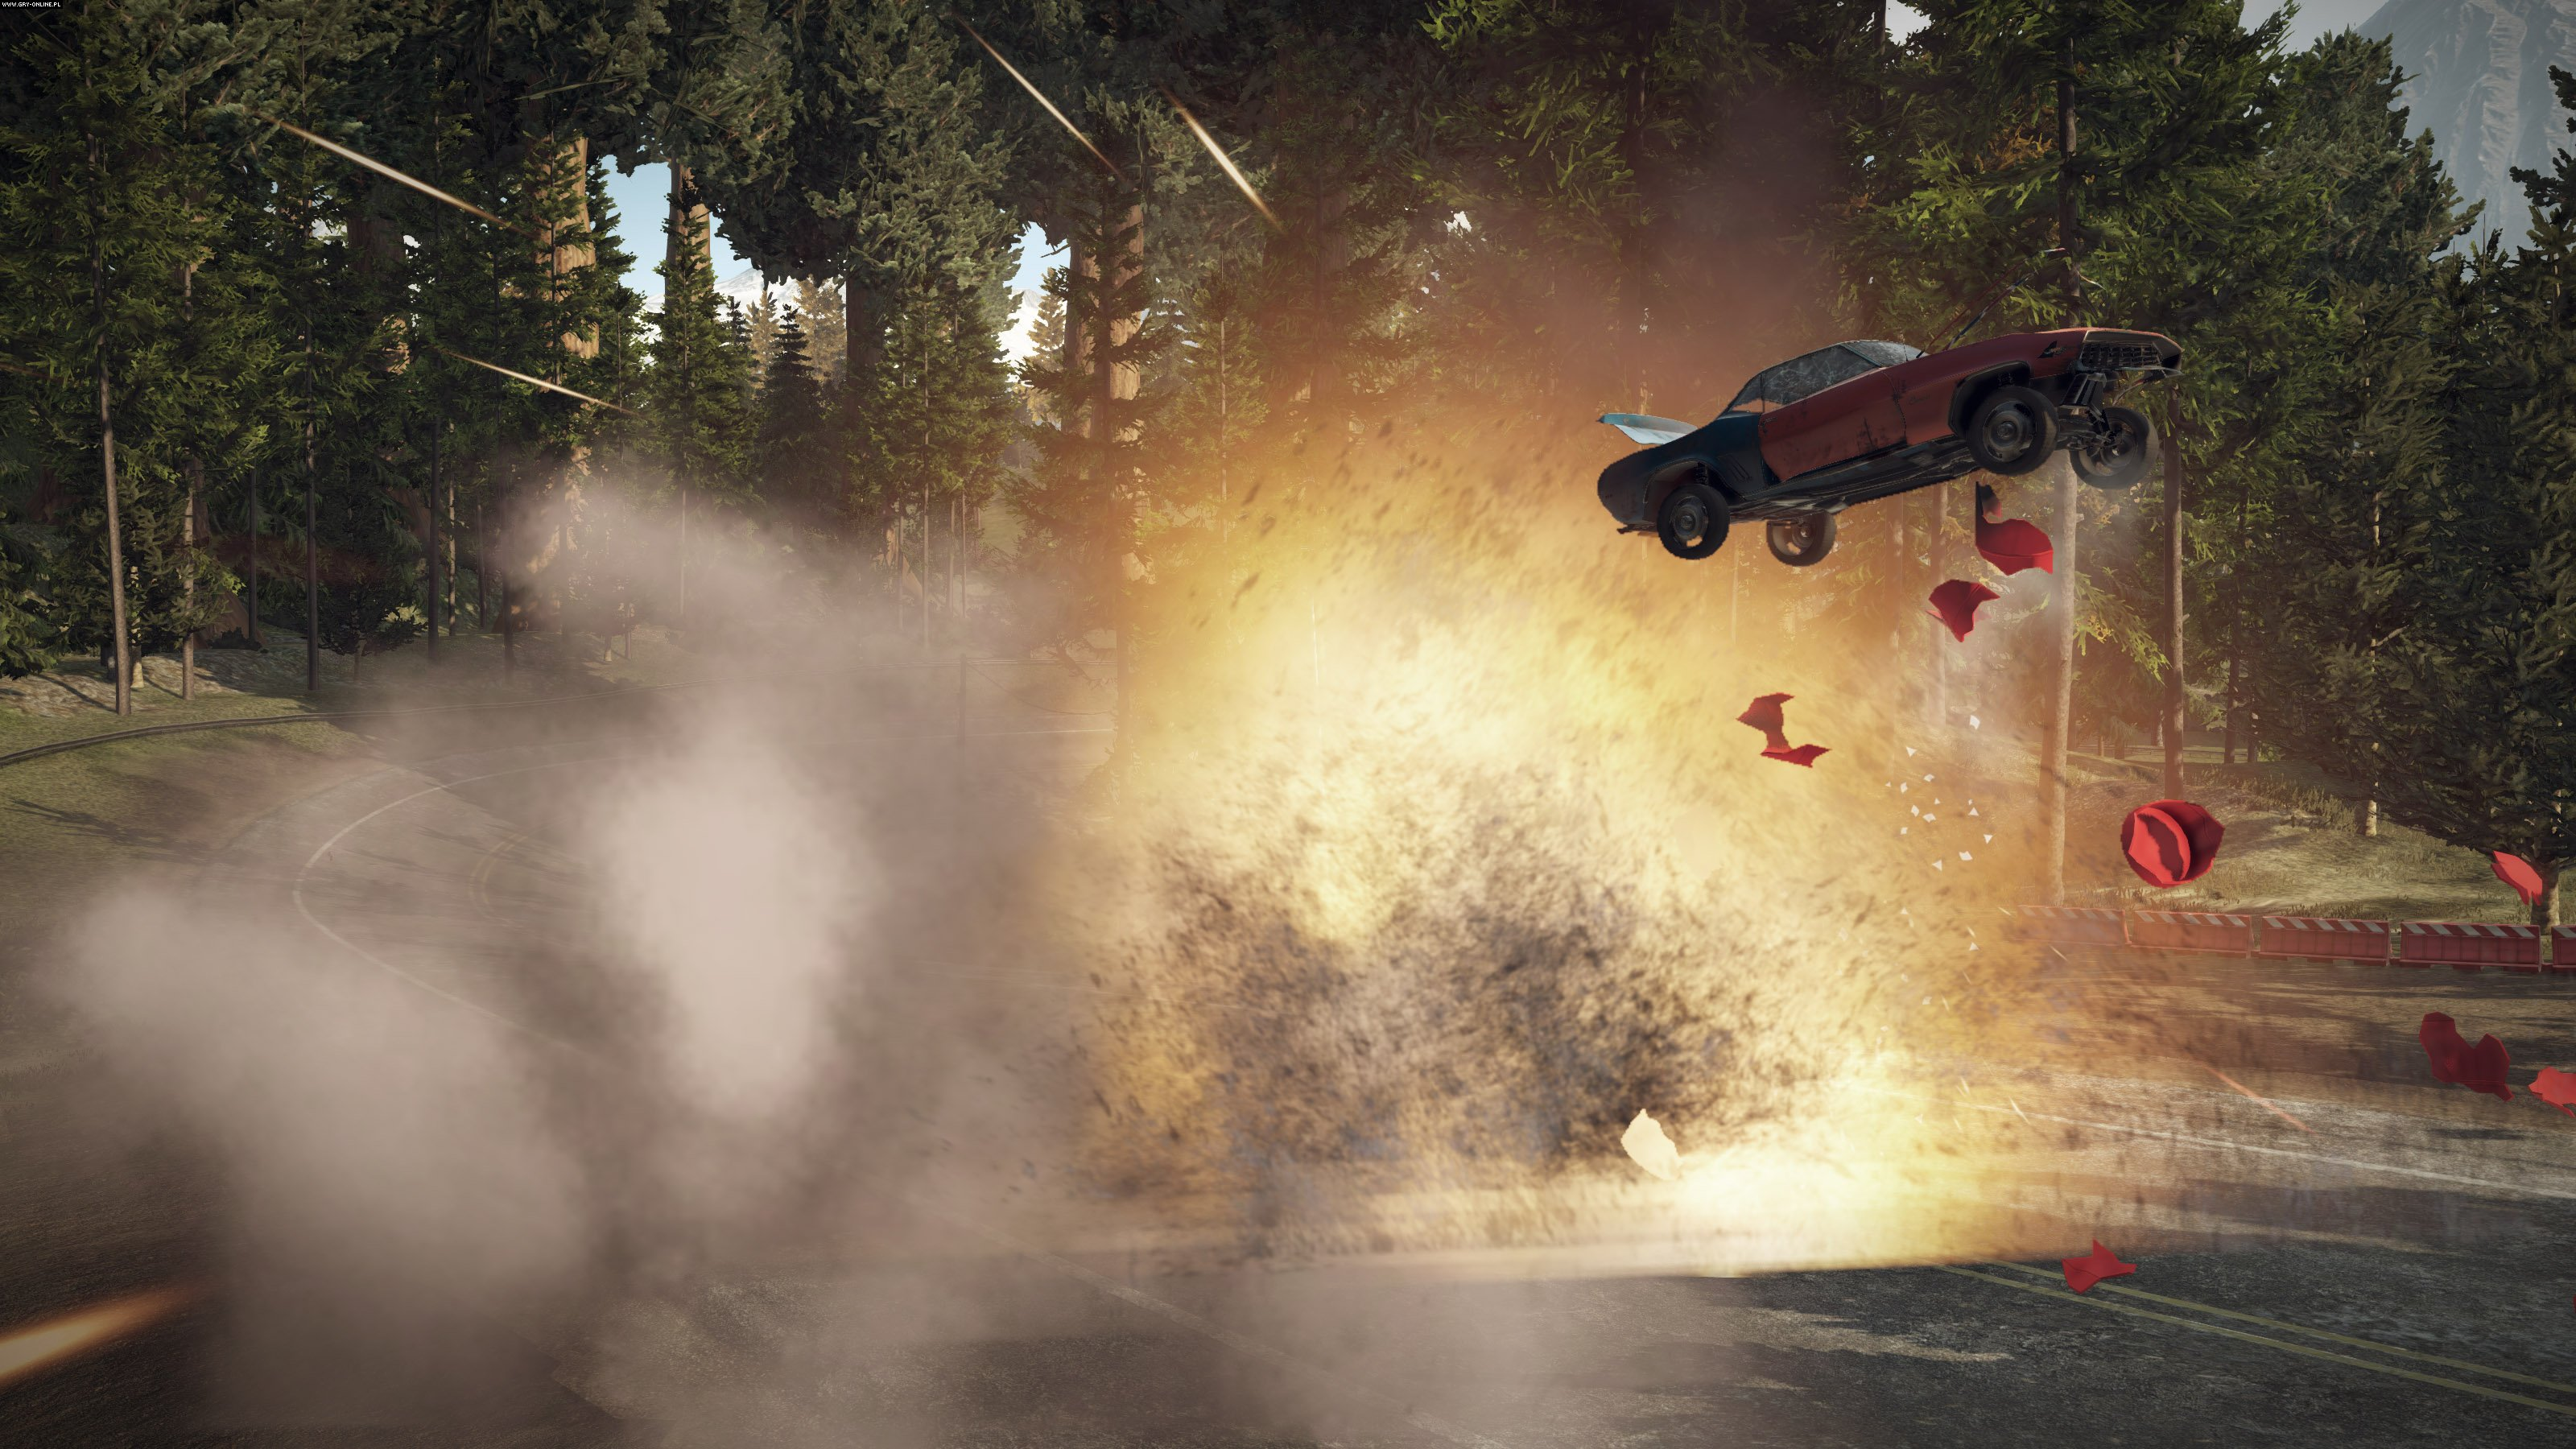 FlatOut 4: Total Insanity PC, PS4, XONE Games Image 6/11, Kylotonn, Strategy First